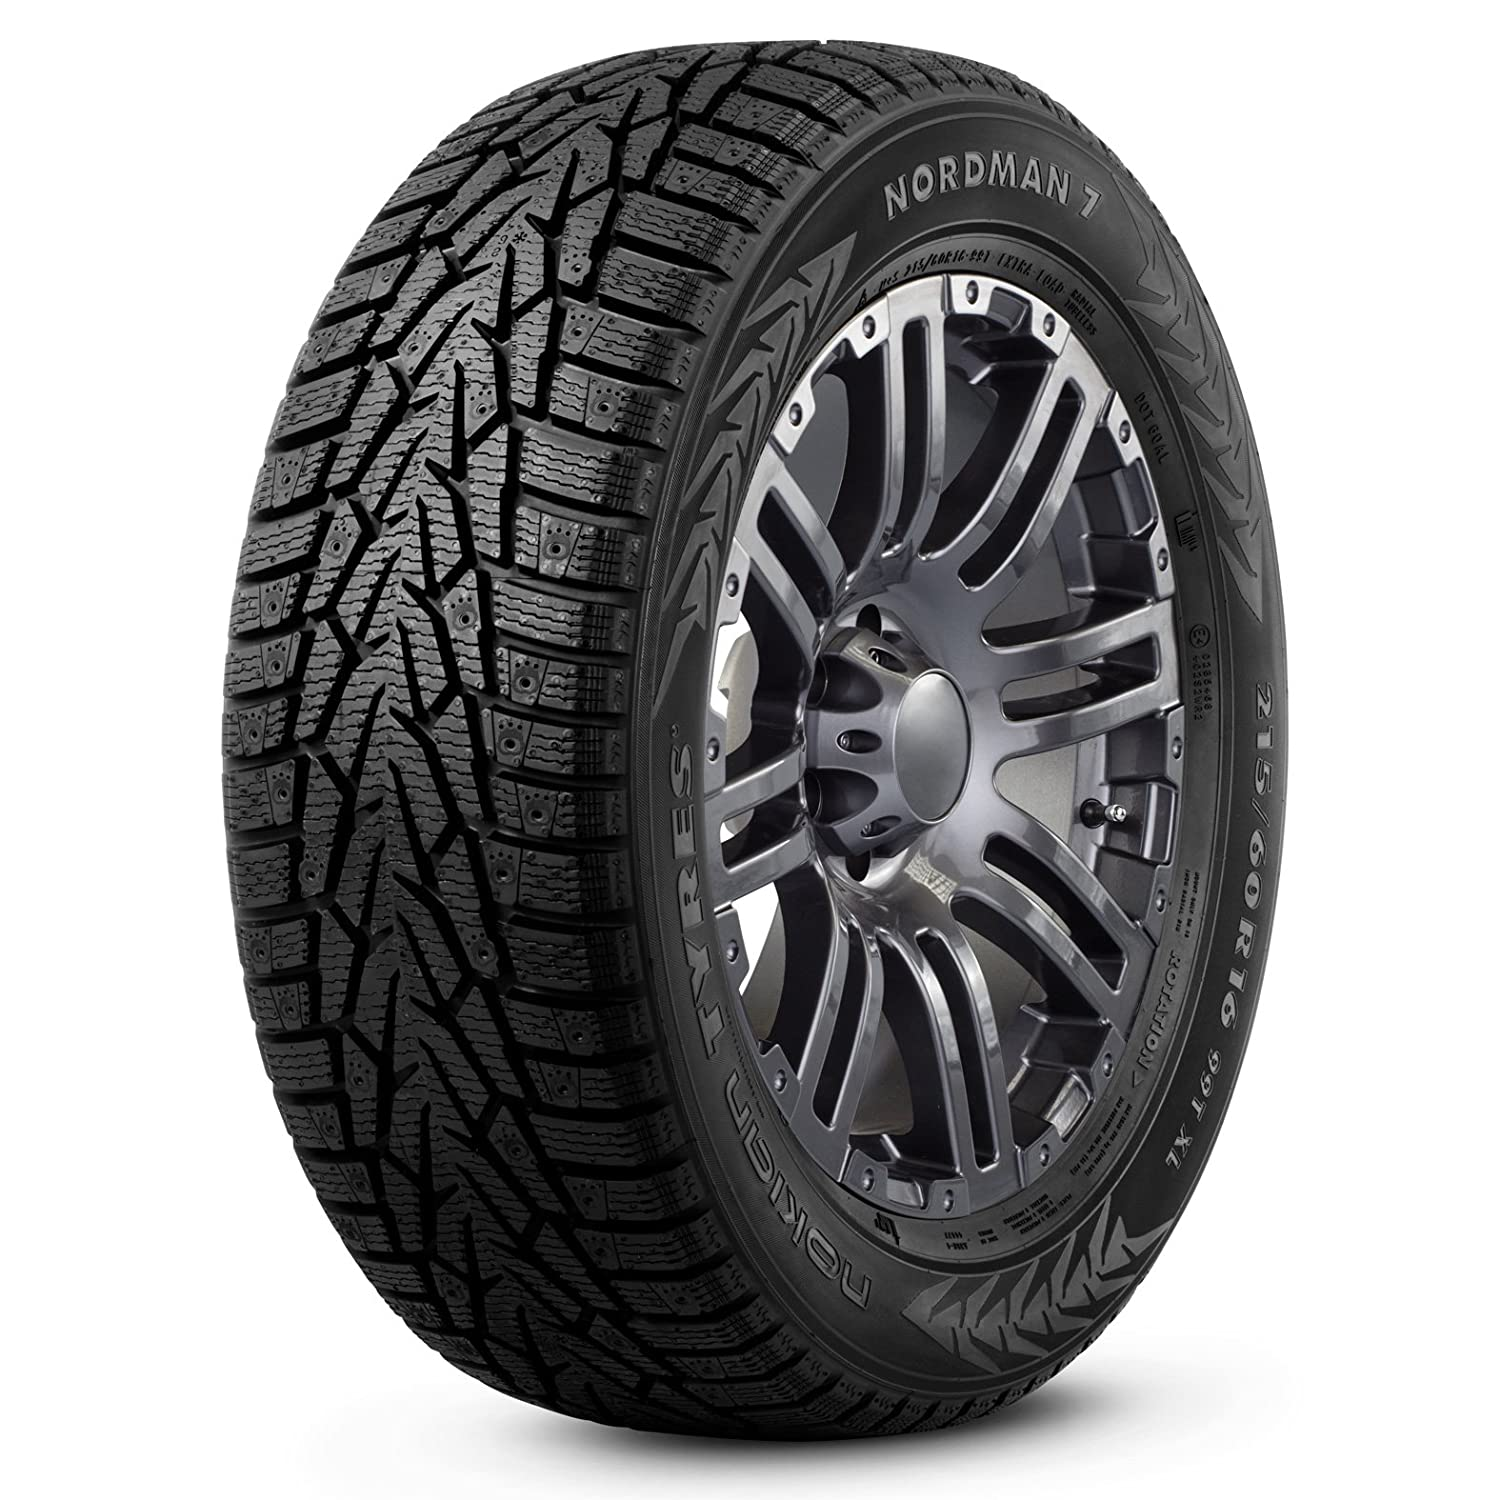 Nokian NORDMAN 7 Performance-Winter Radial Tire-205/65R16 99T T430335